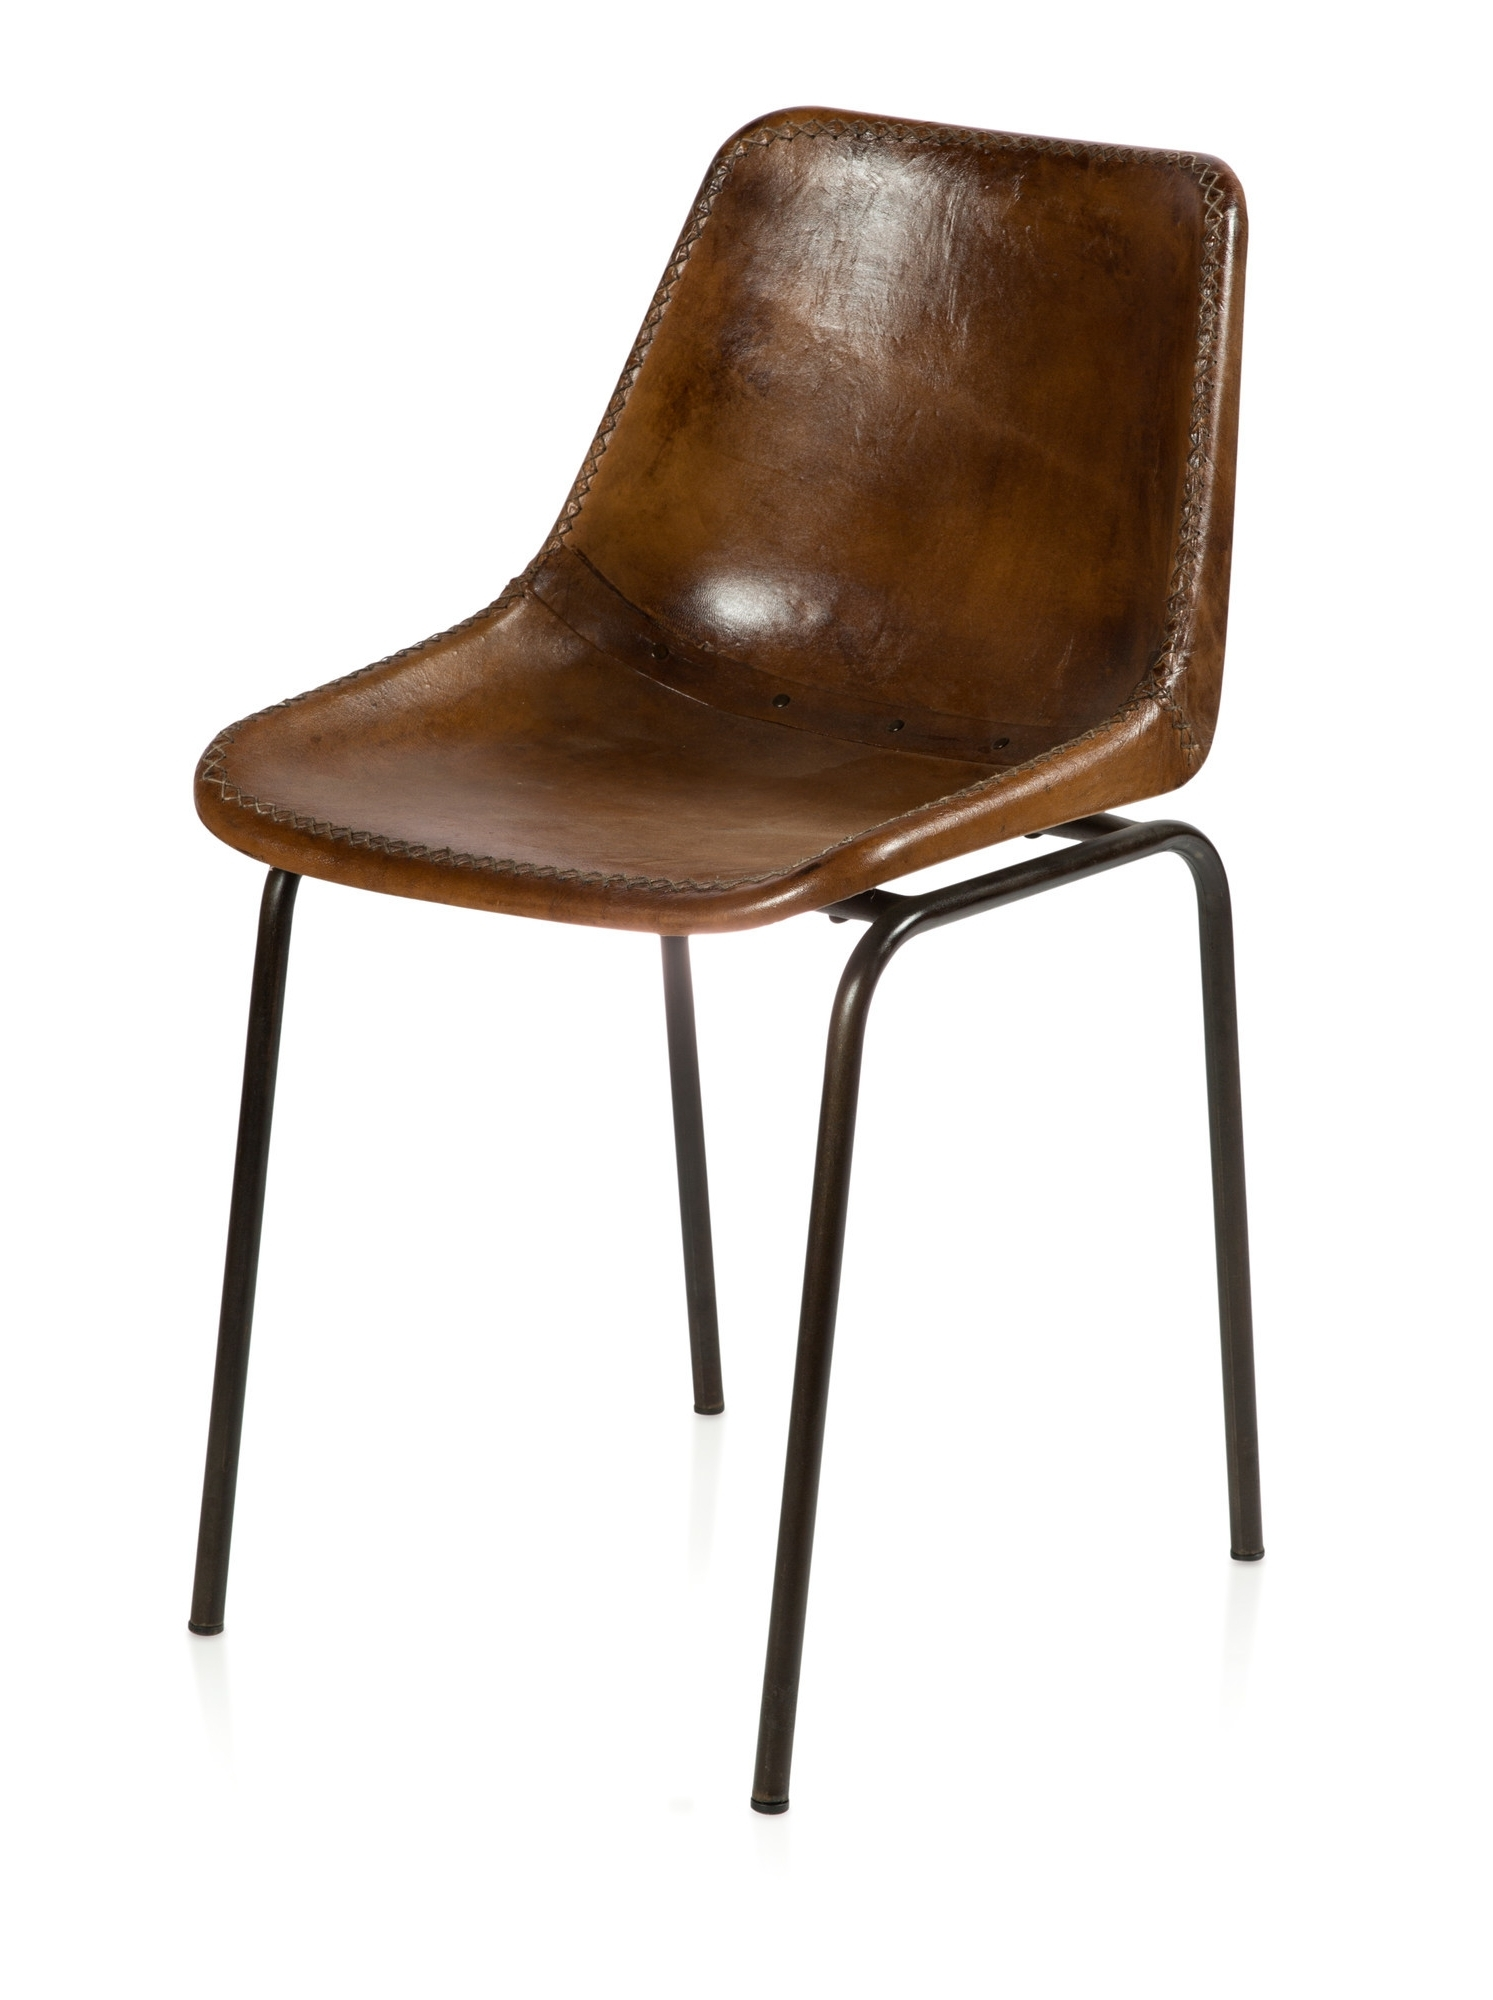 Best And Newest Brown Leather Dining Chairs Throughout Andiez Brown Leather Dining Chair (Gallery 14 of 25)